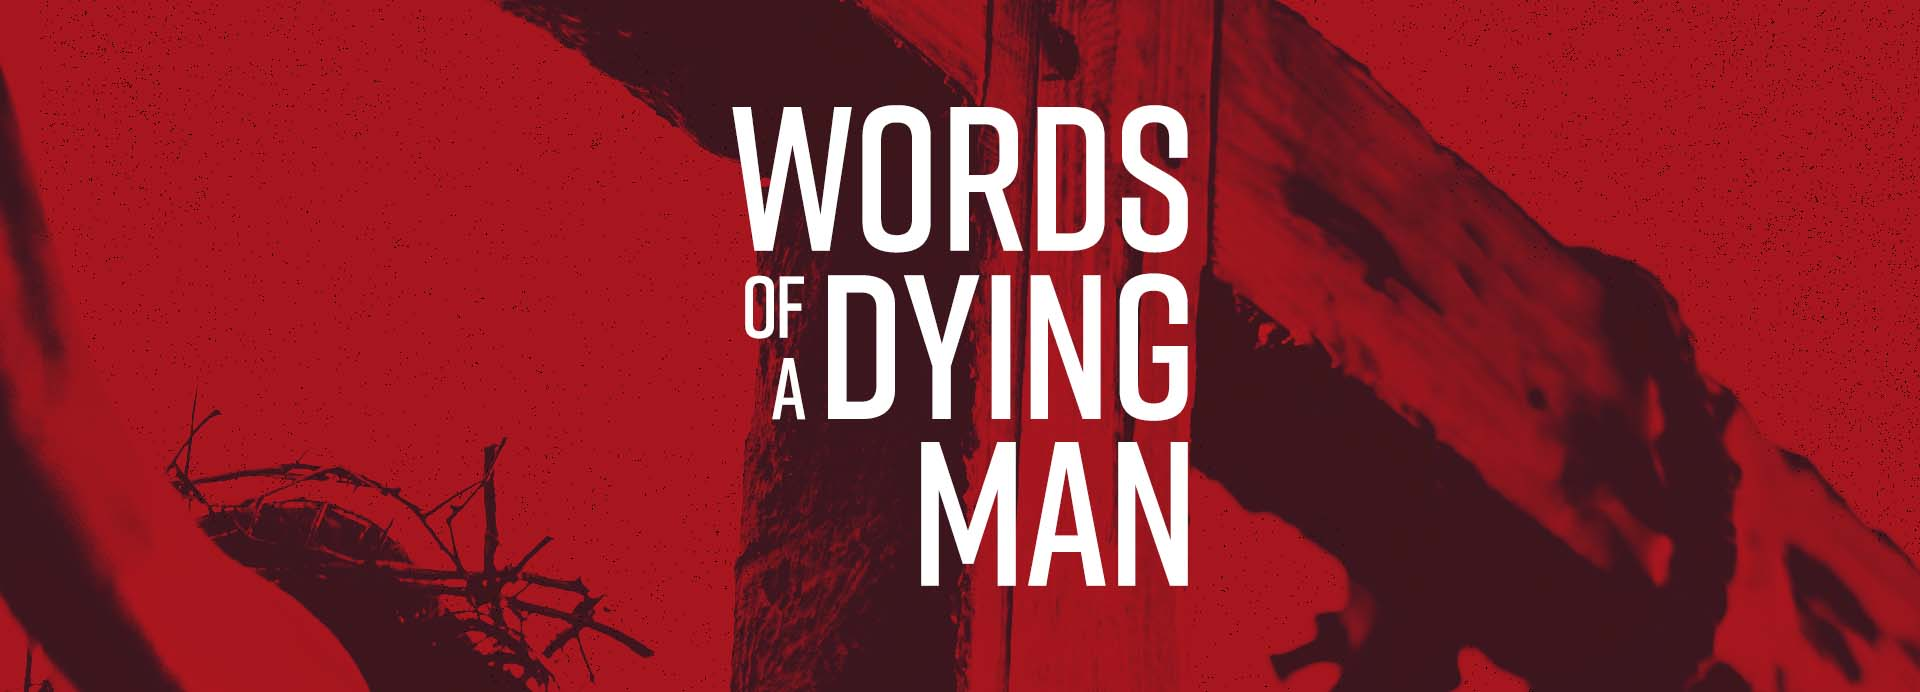 Words of a Dying Man